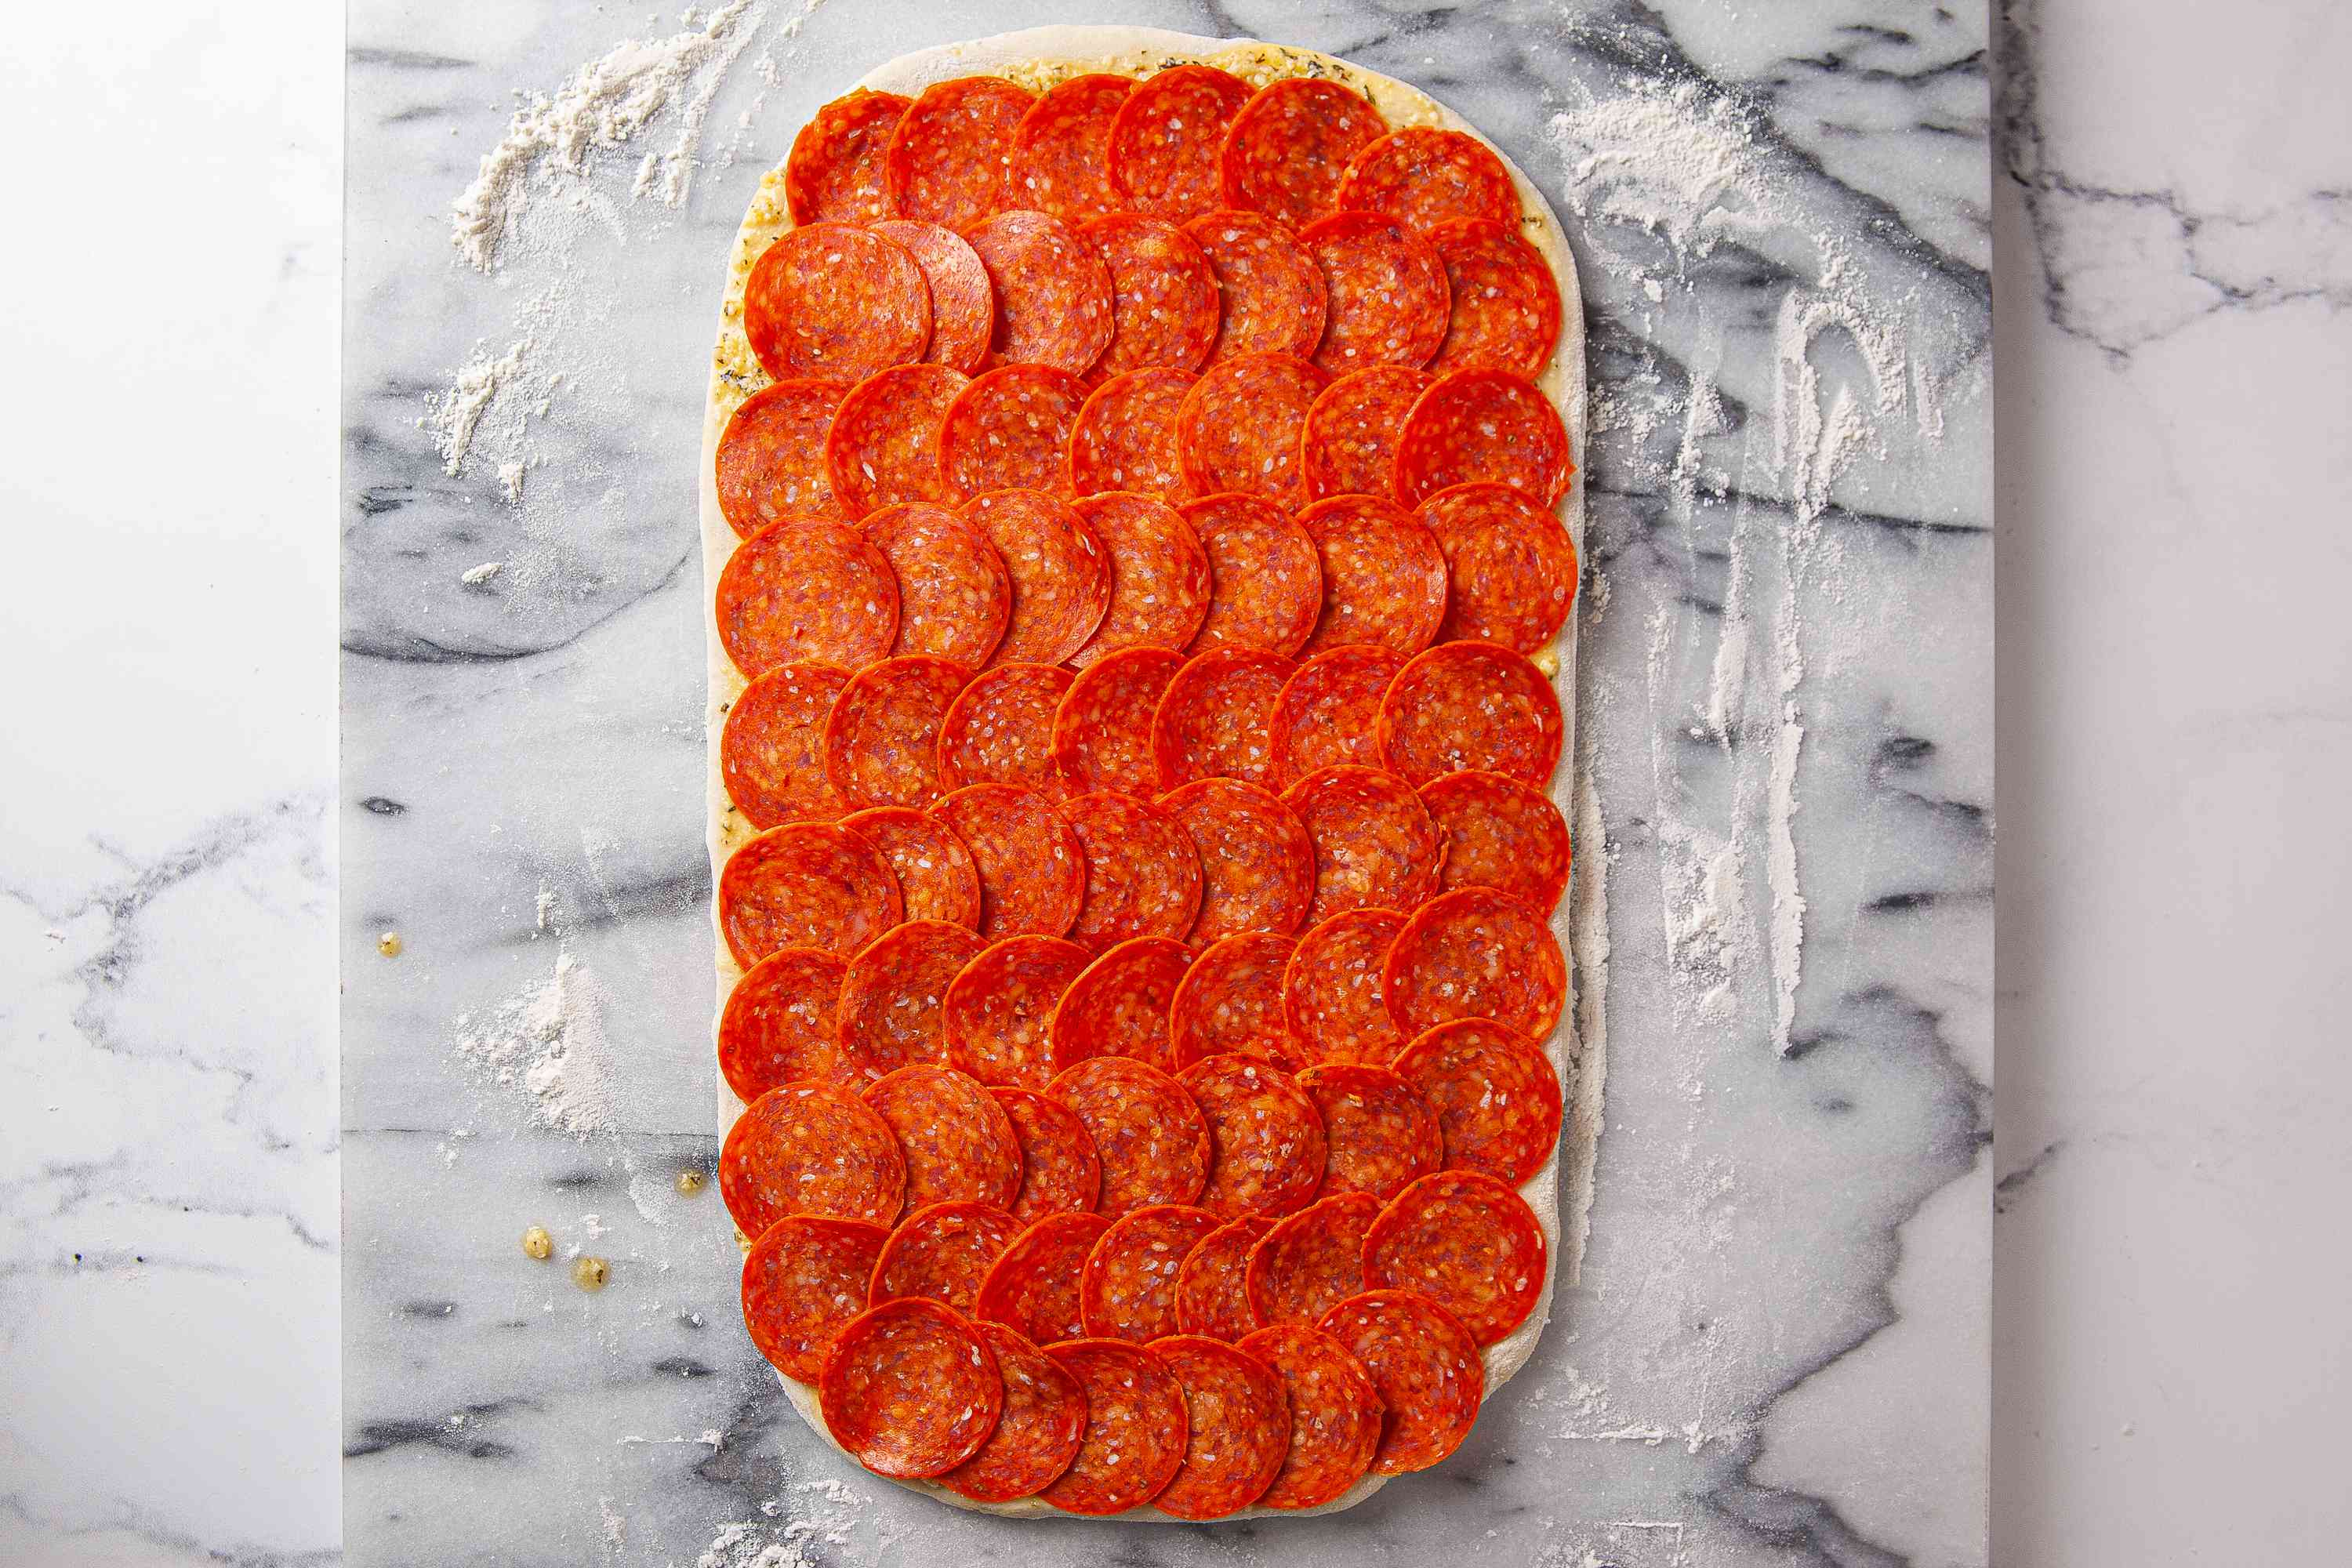 Layer on the pepperoni